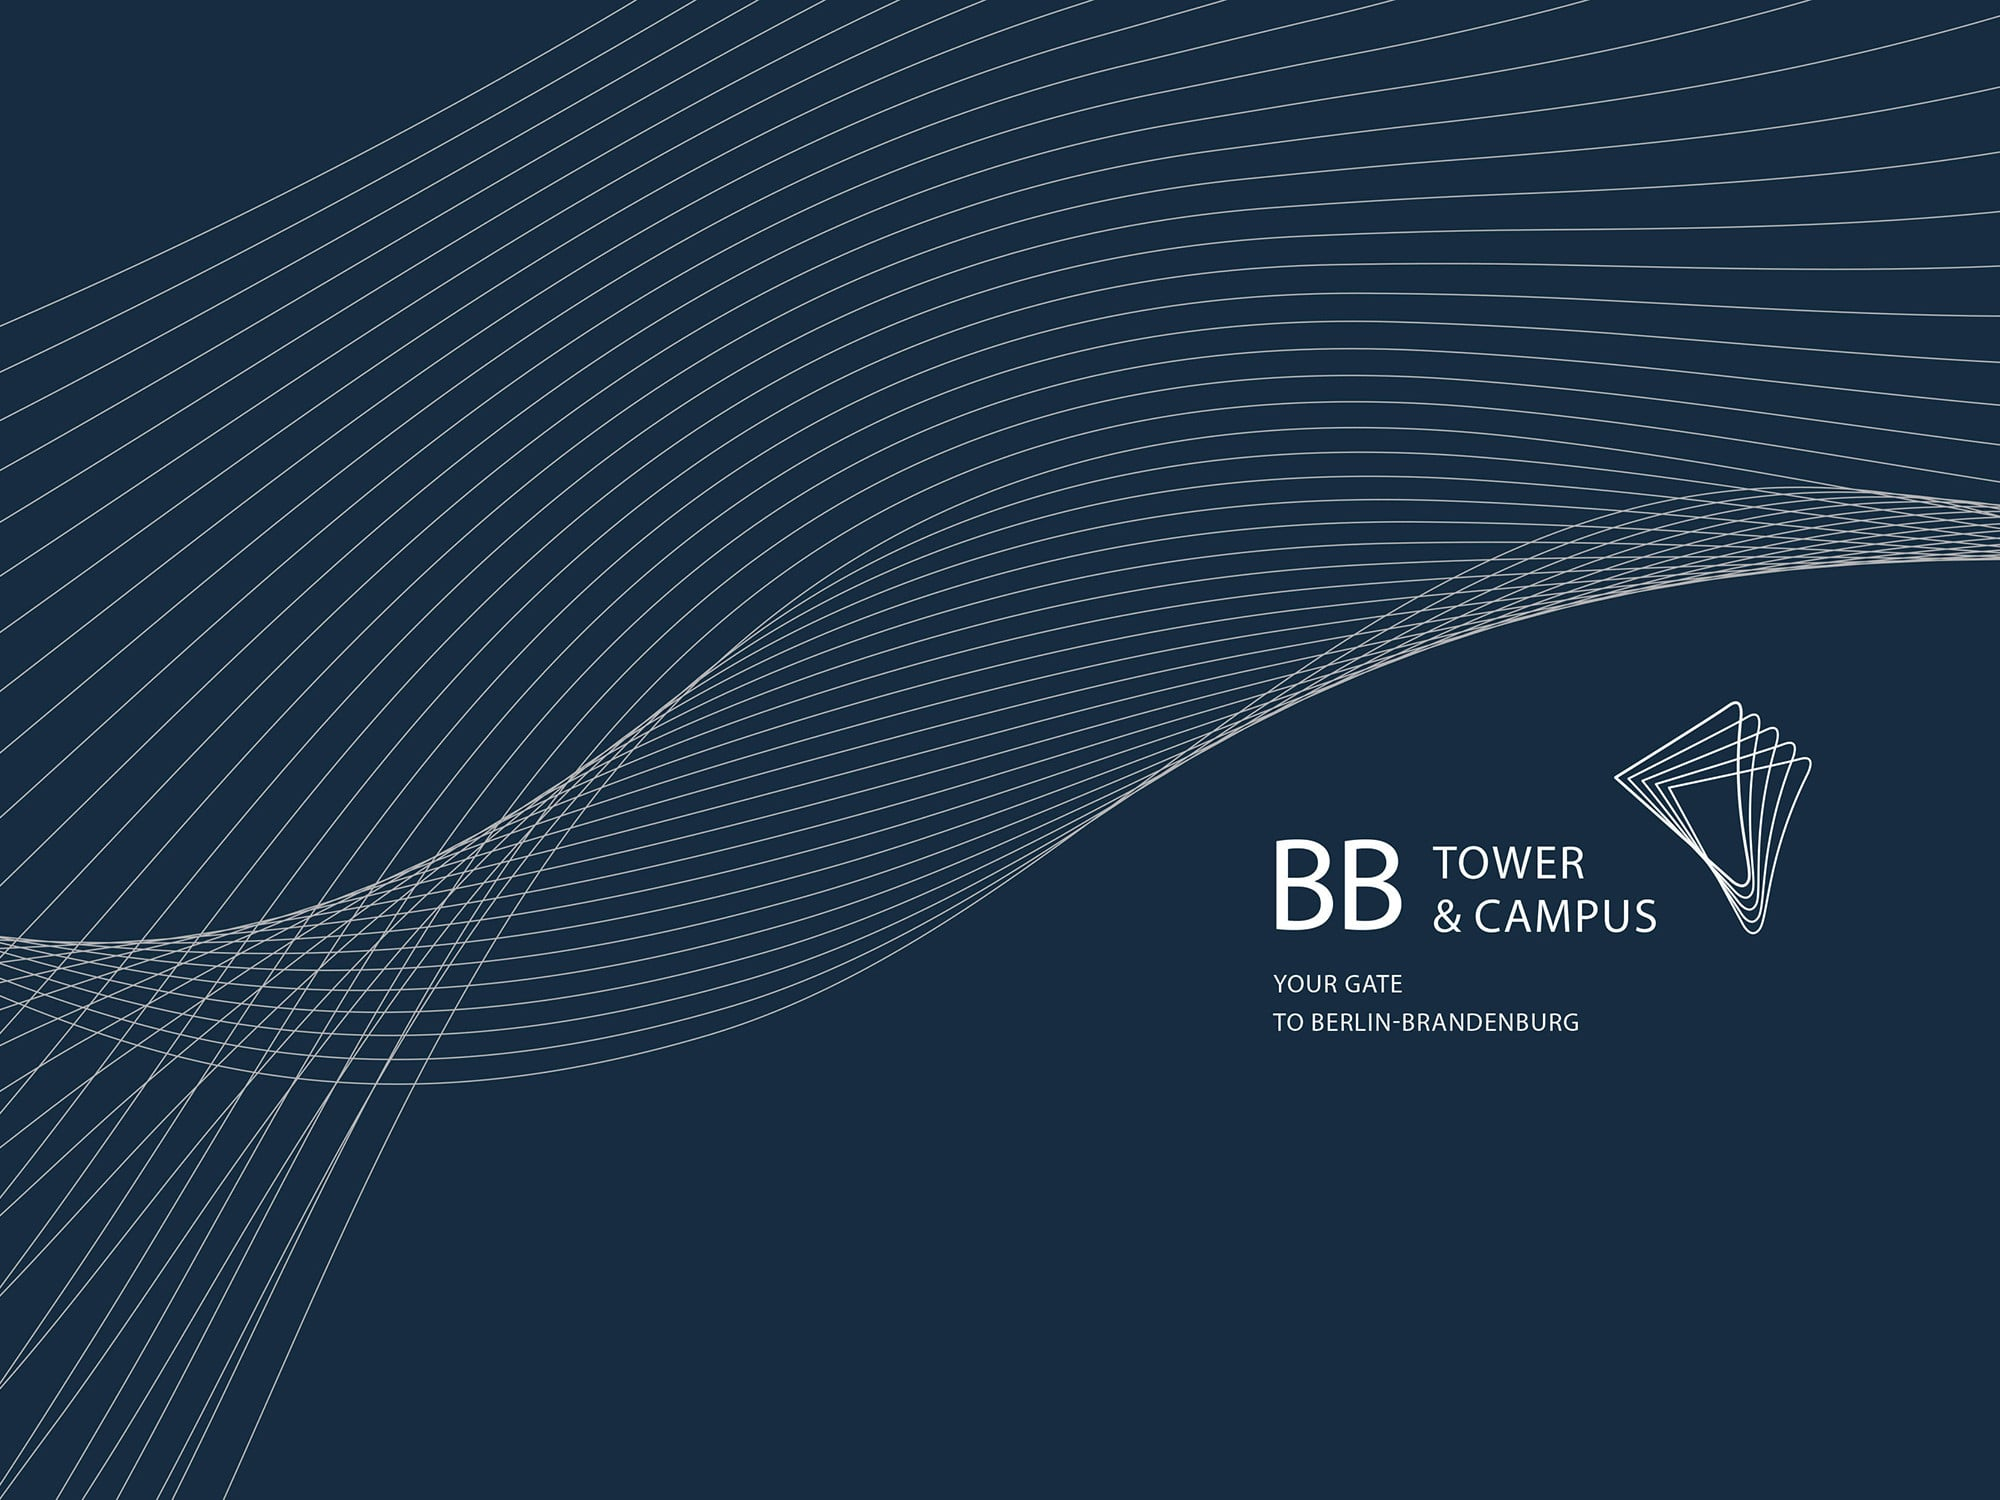 BB-Tower-Campus-Logo